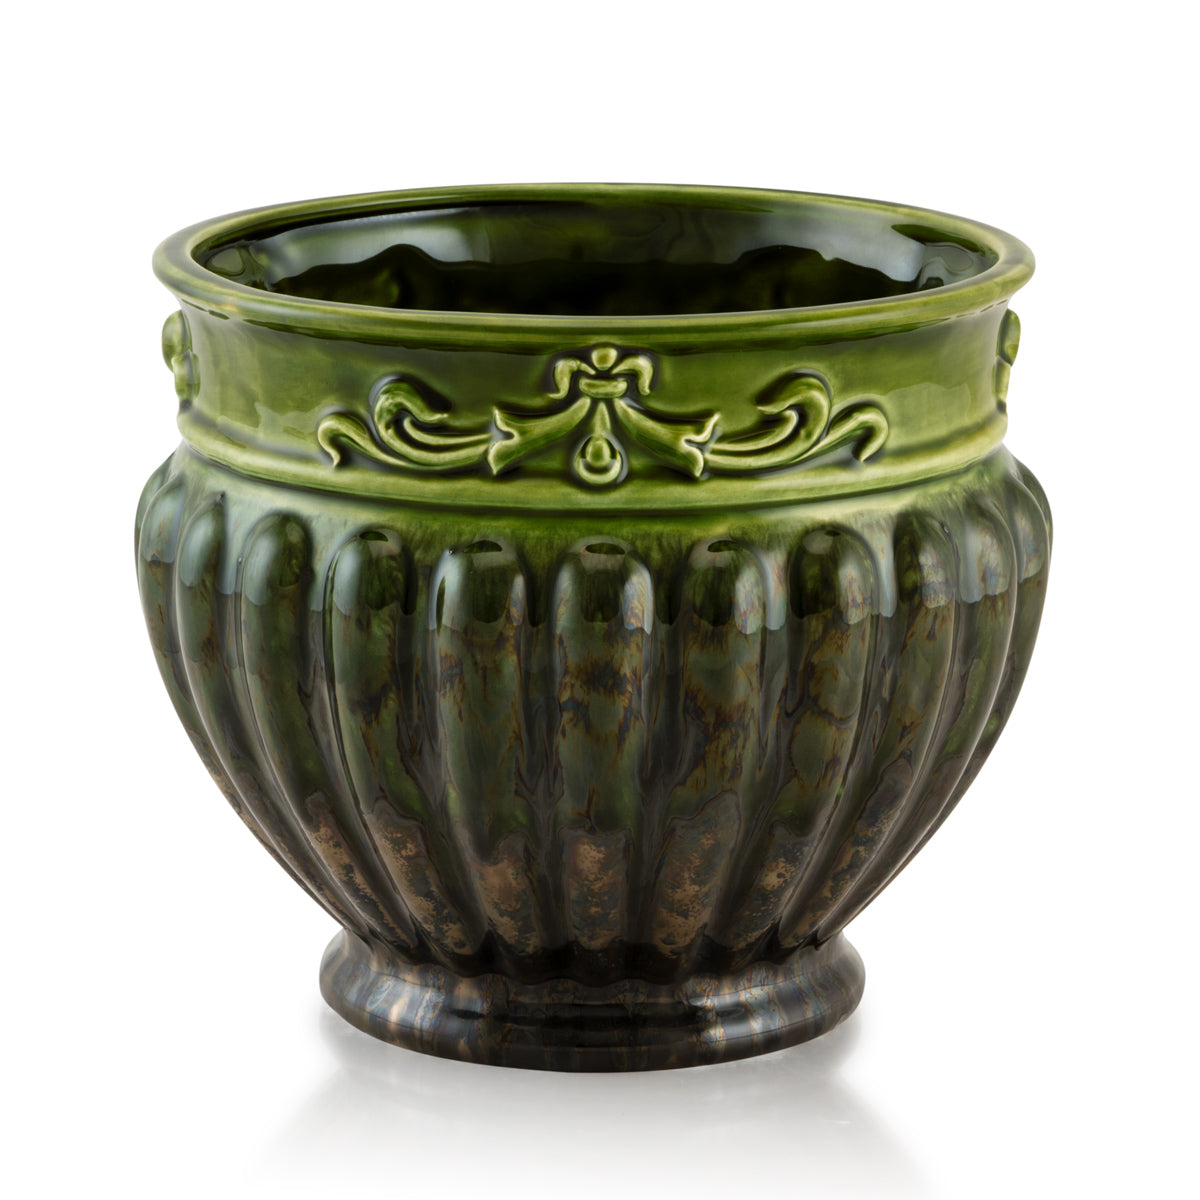 ceramic porcelain ribbed cachepot, finished in green color and bronze